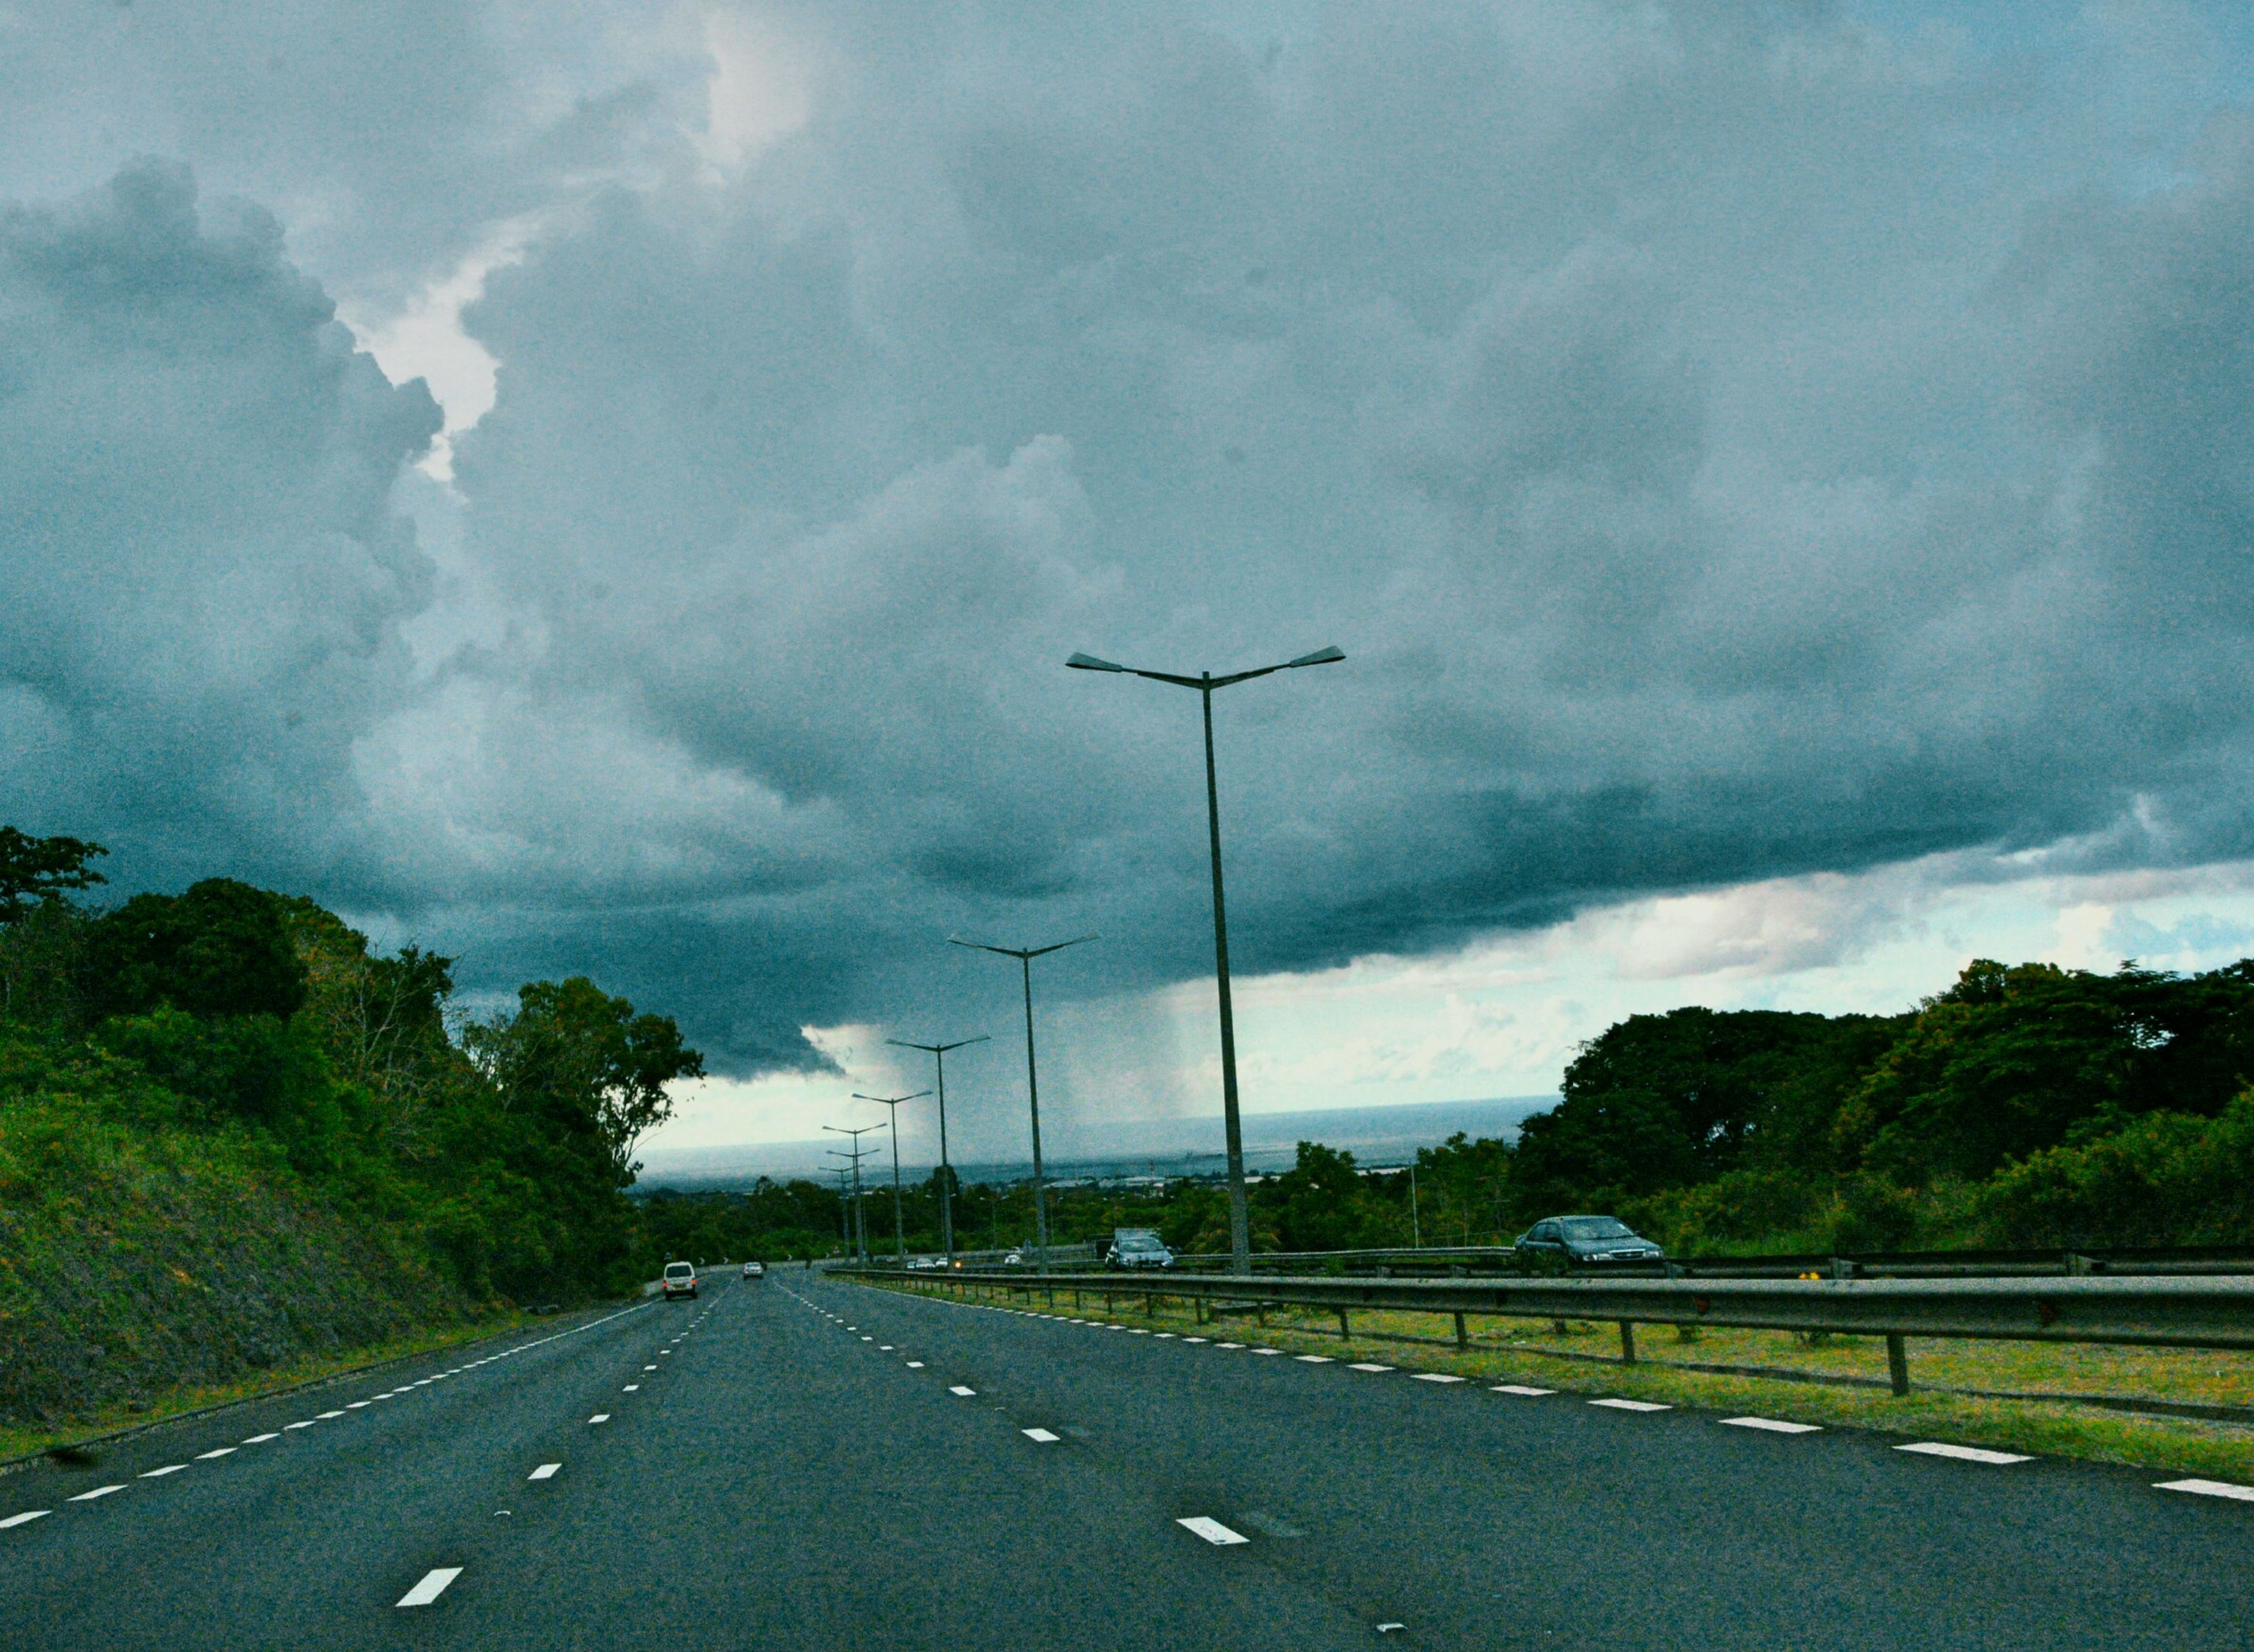 road, cloud - sky, transportation, car, no people, sky, storm cloud, tree, rain, power in nature, highway, the way forward, nature, land vehicle, dramatic sky, storm, outdoors, thunderstorm, day